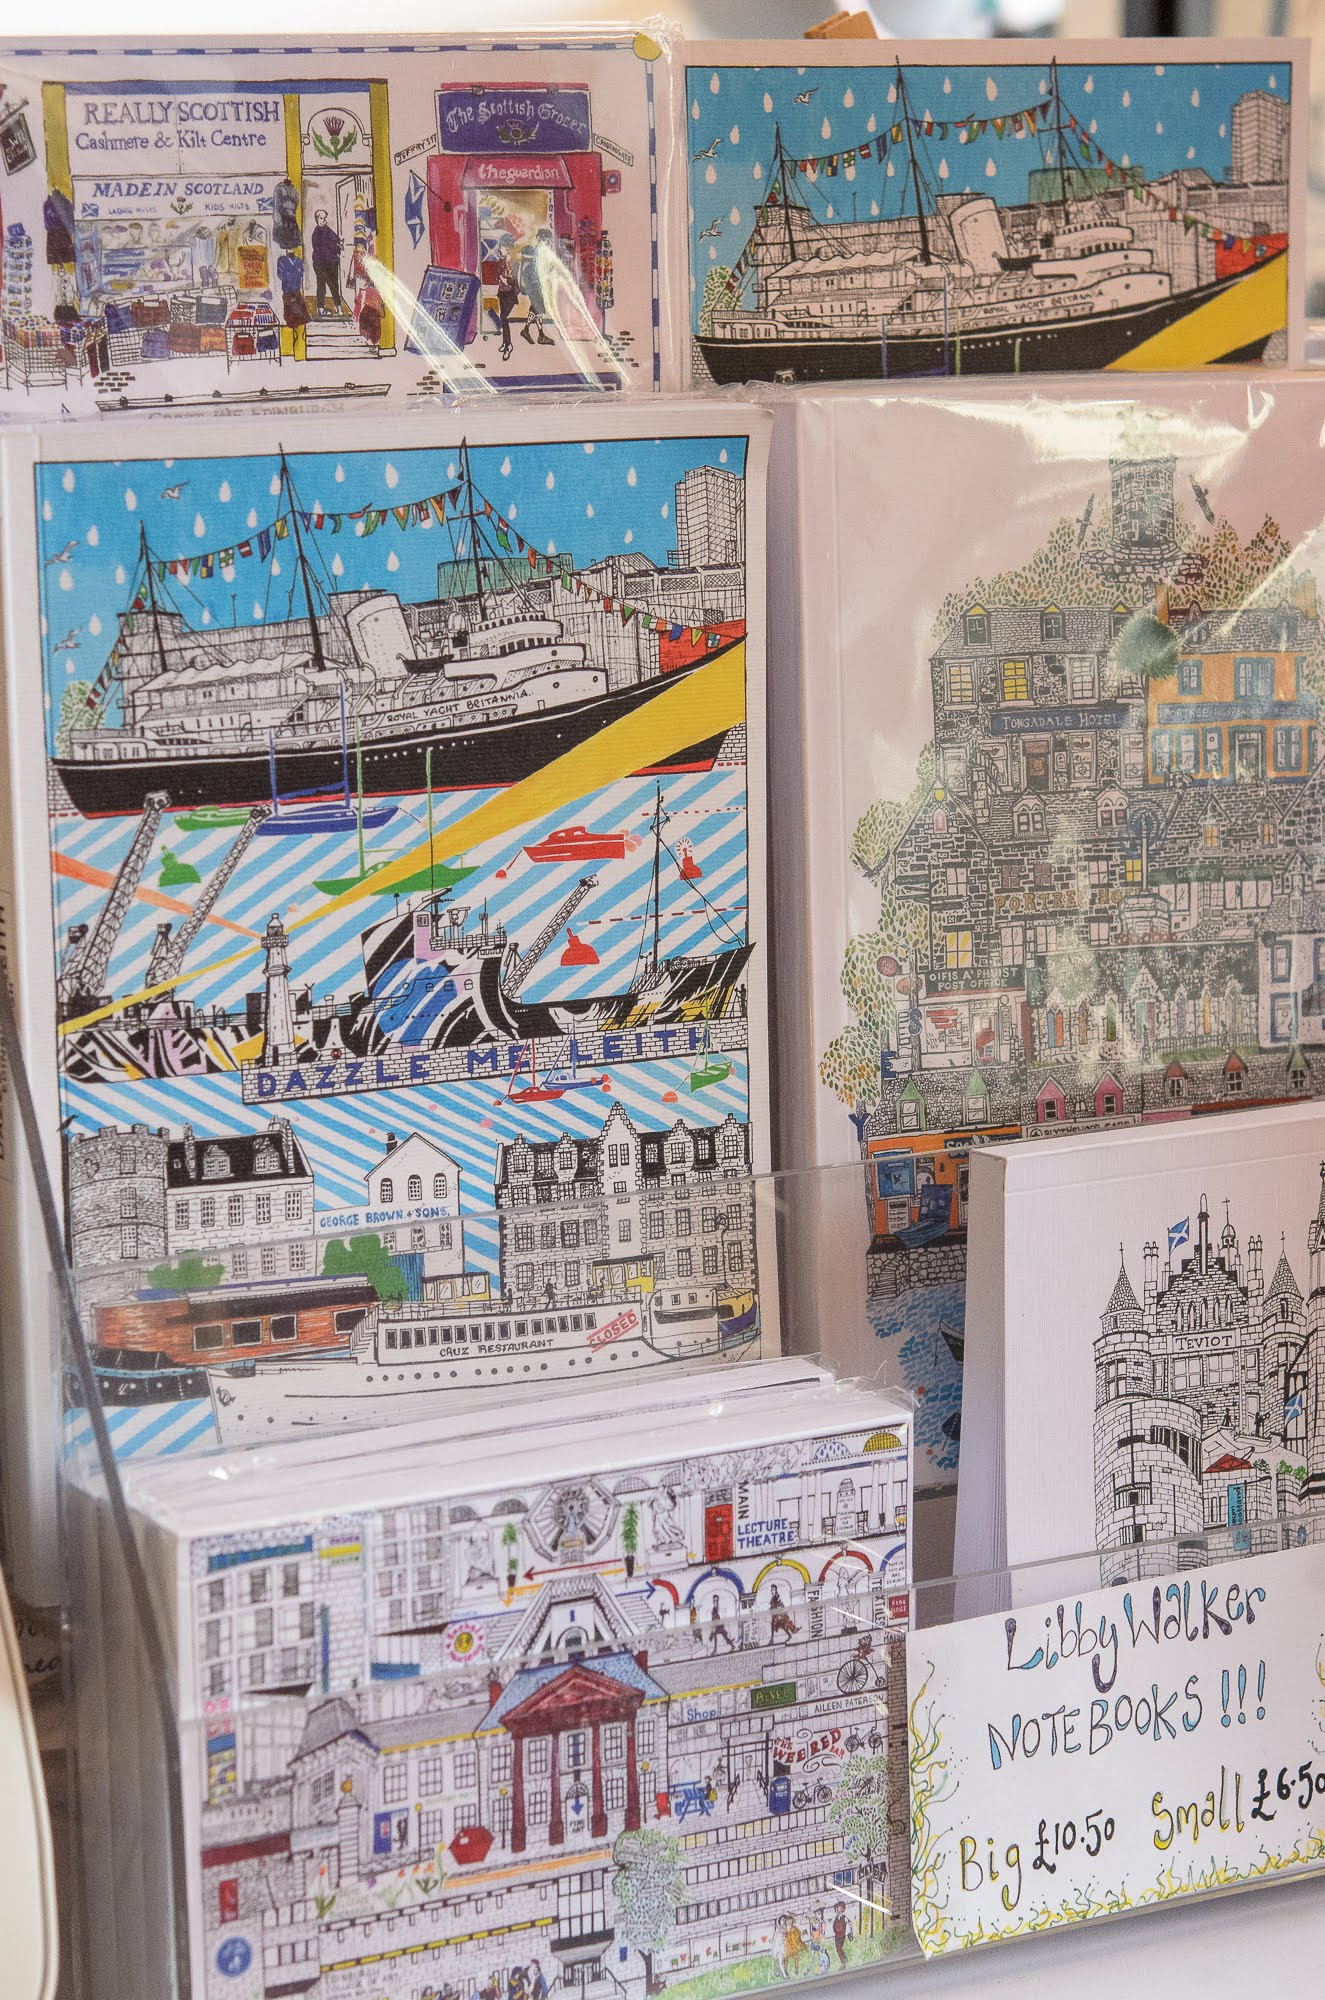 Red Door Gallery has notebooks with covers designed by local artists